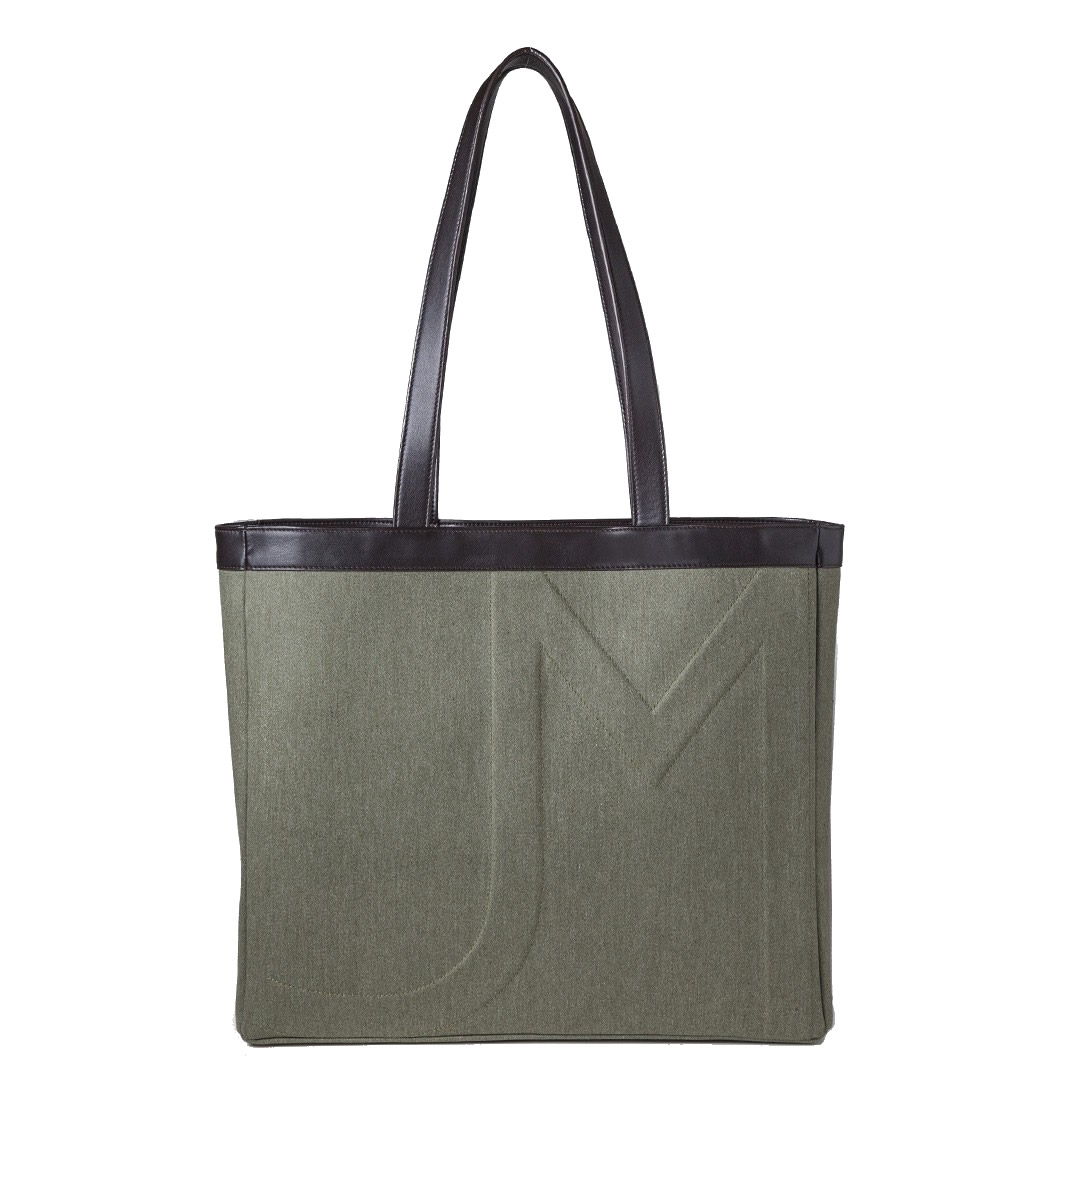 03213olvb_wianno_tote_front_1.jpg